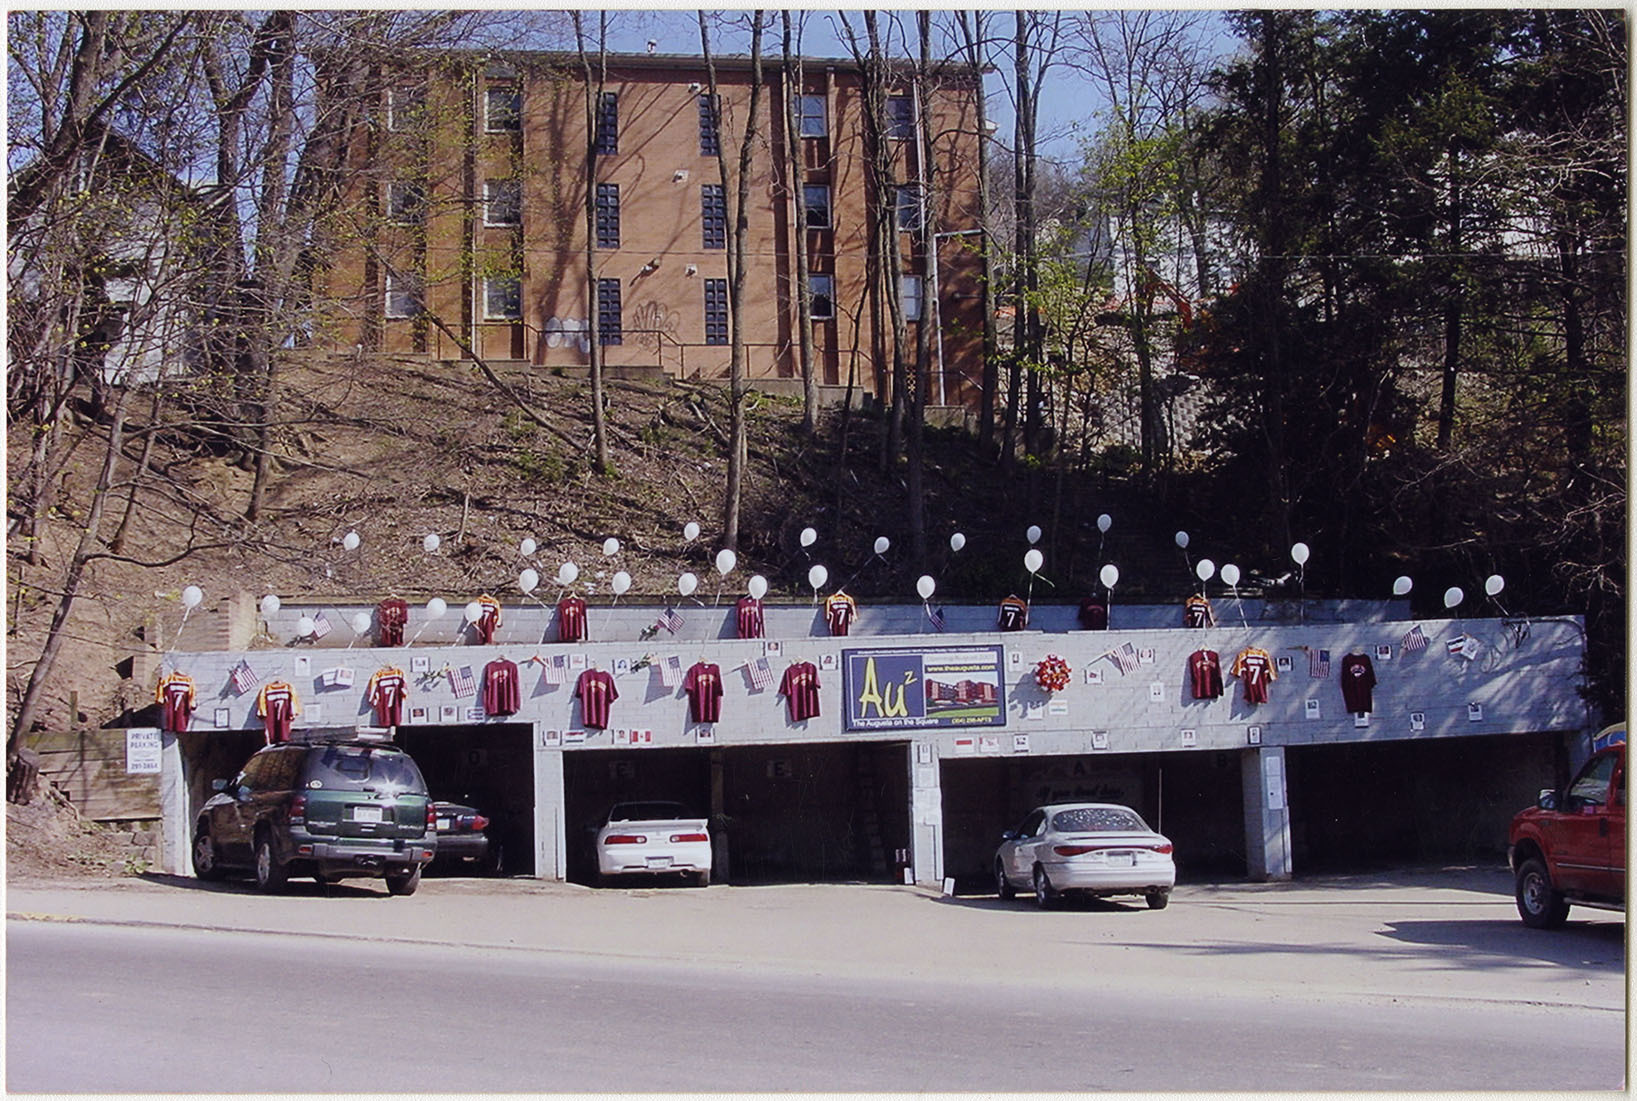 Photograph of a Parking Lot with VT Jerseys and Balloons, 2, F00048 (Ms2008-020)